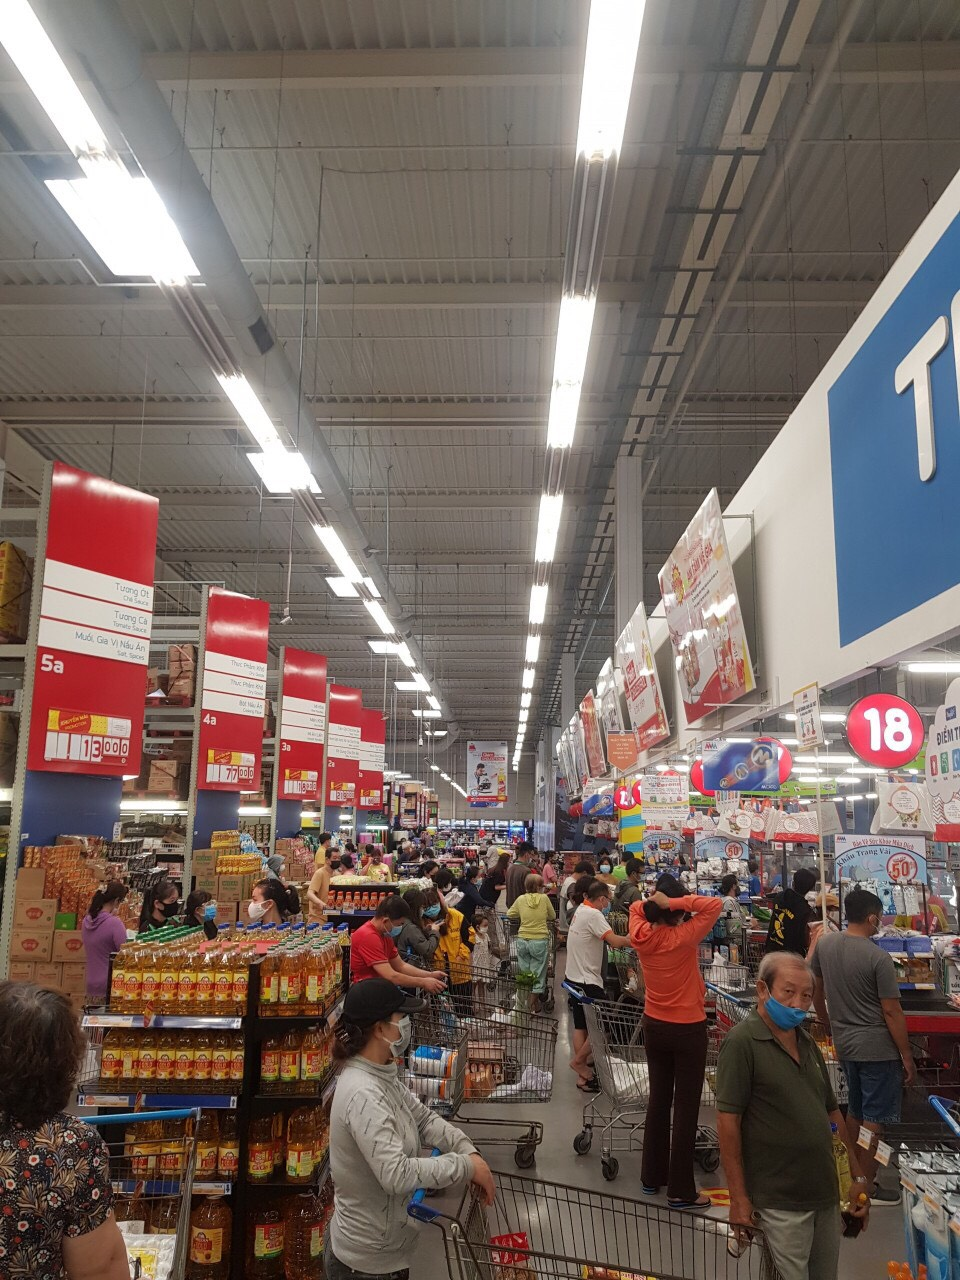 Markets, supermarkets are full of goods;  People go shopping orderly - Photo 2.